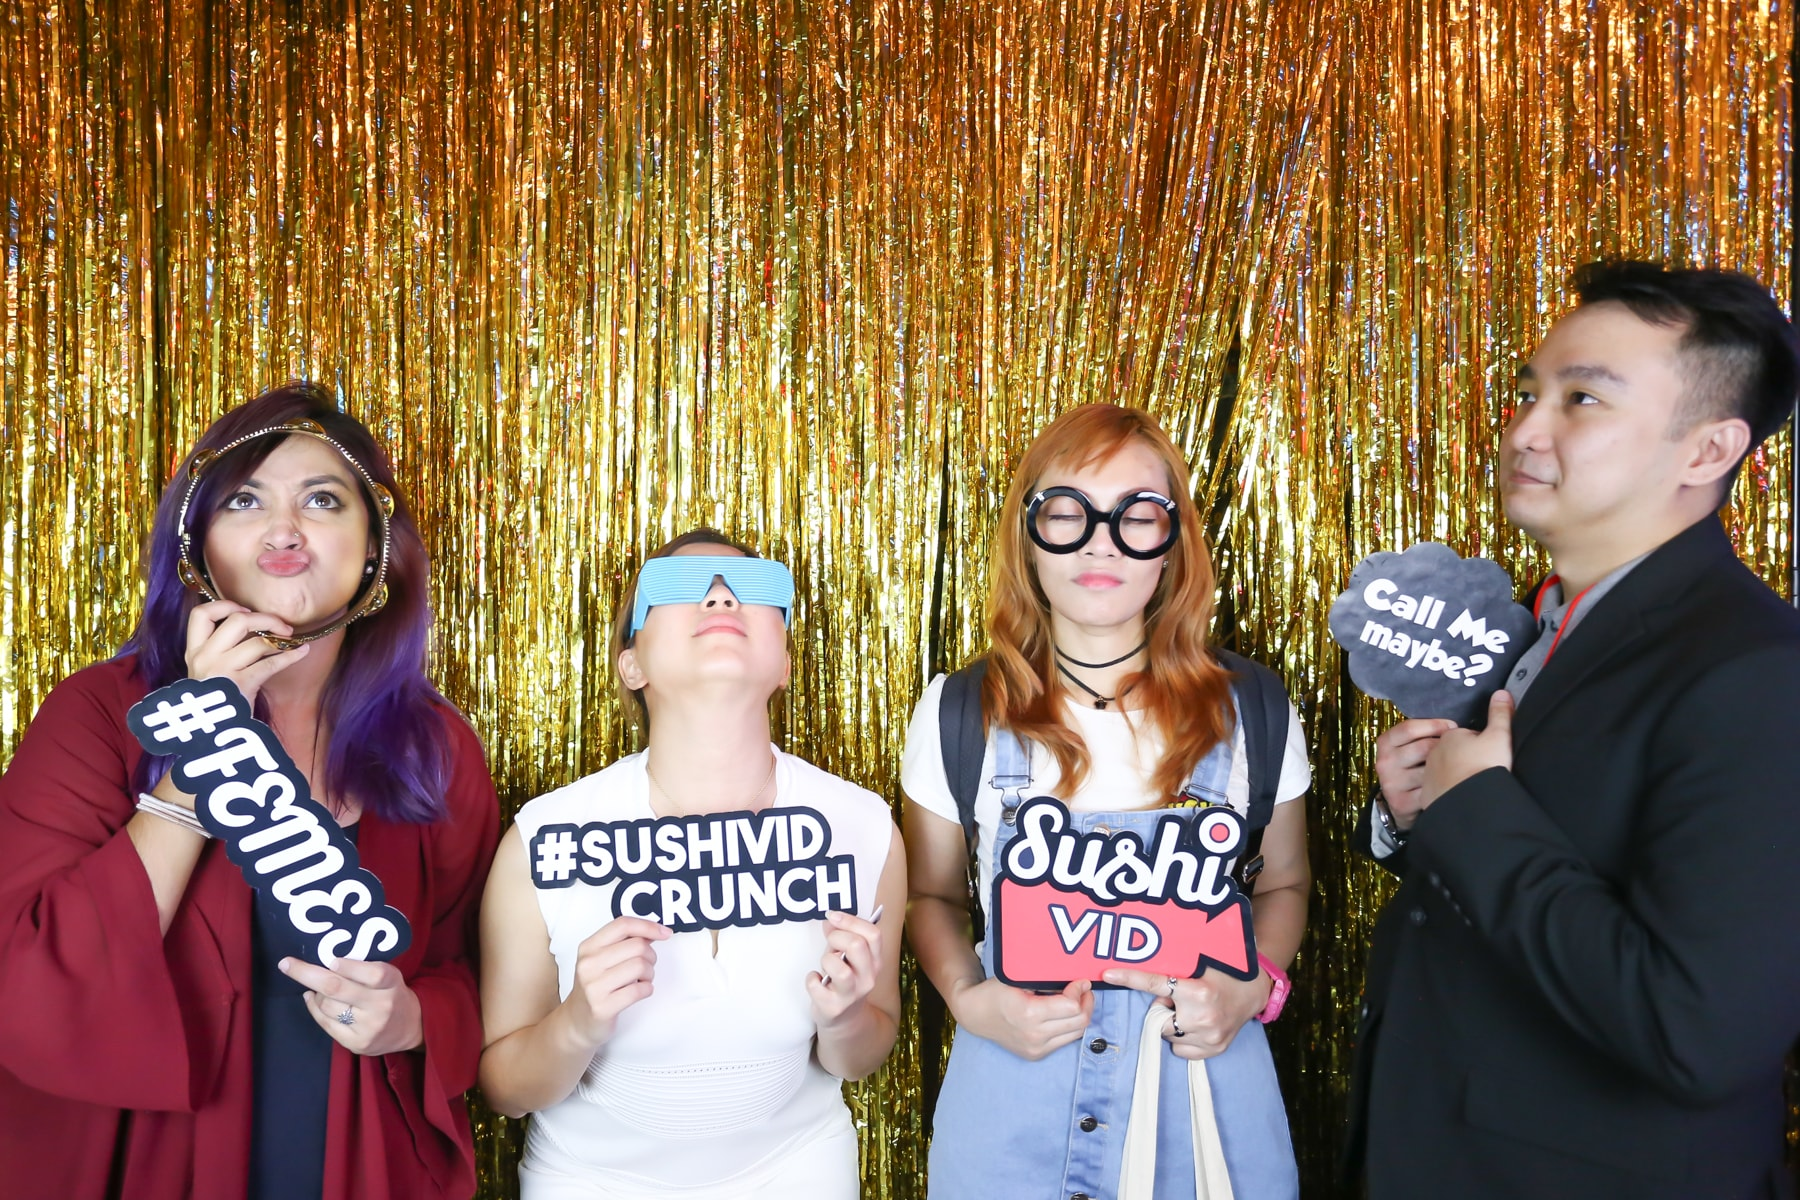 Sushivid+crunch+tagbooth+13